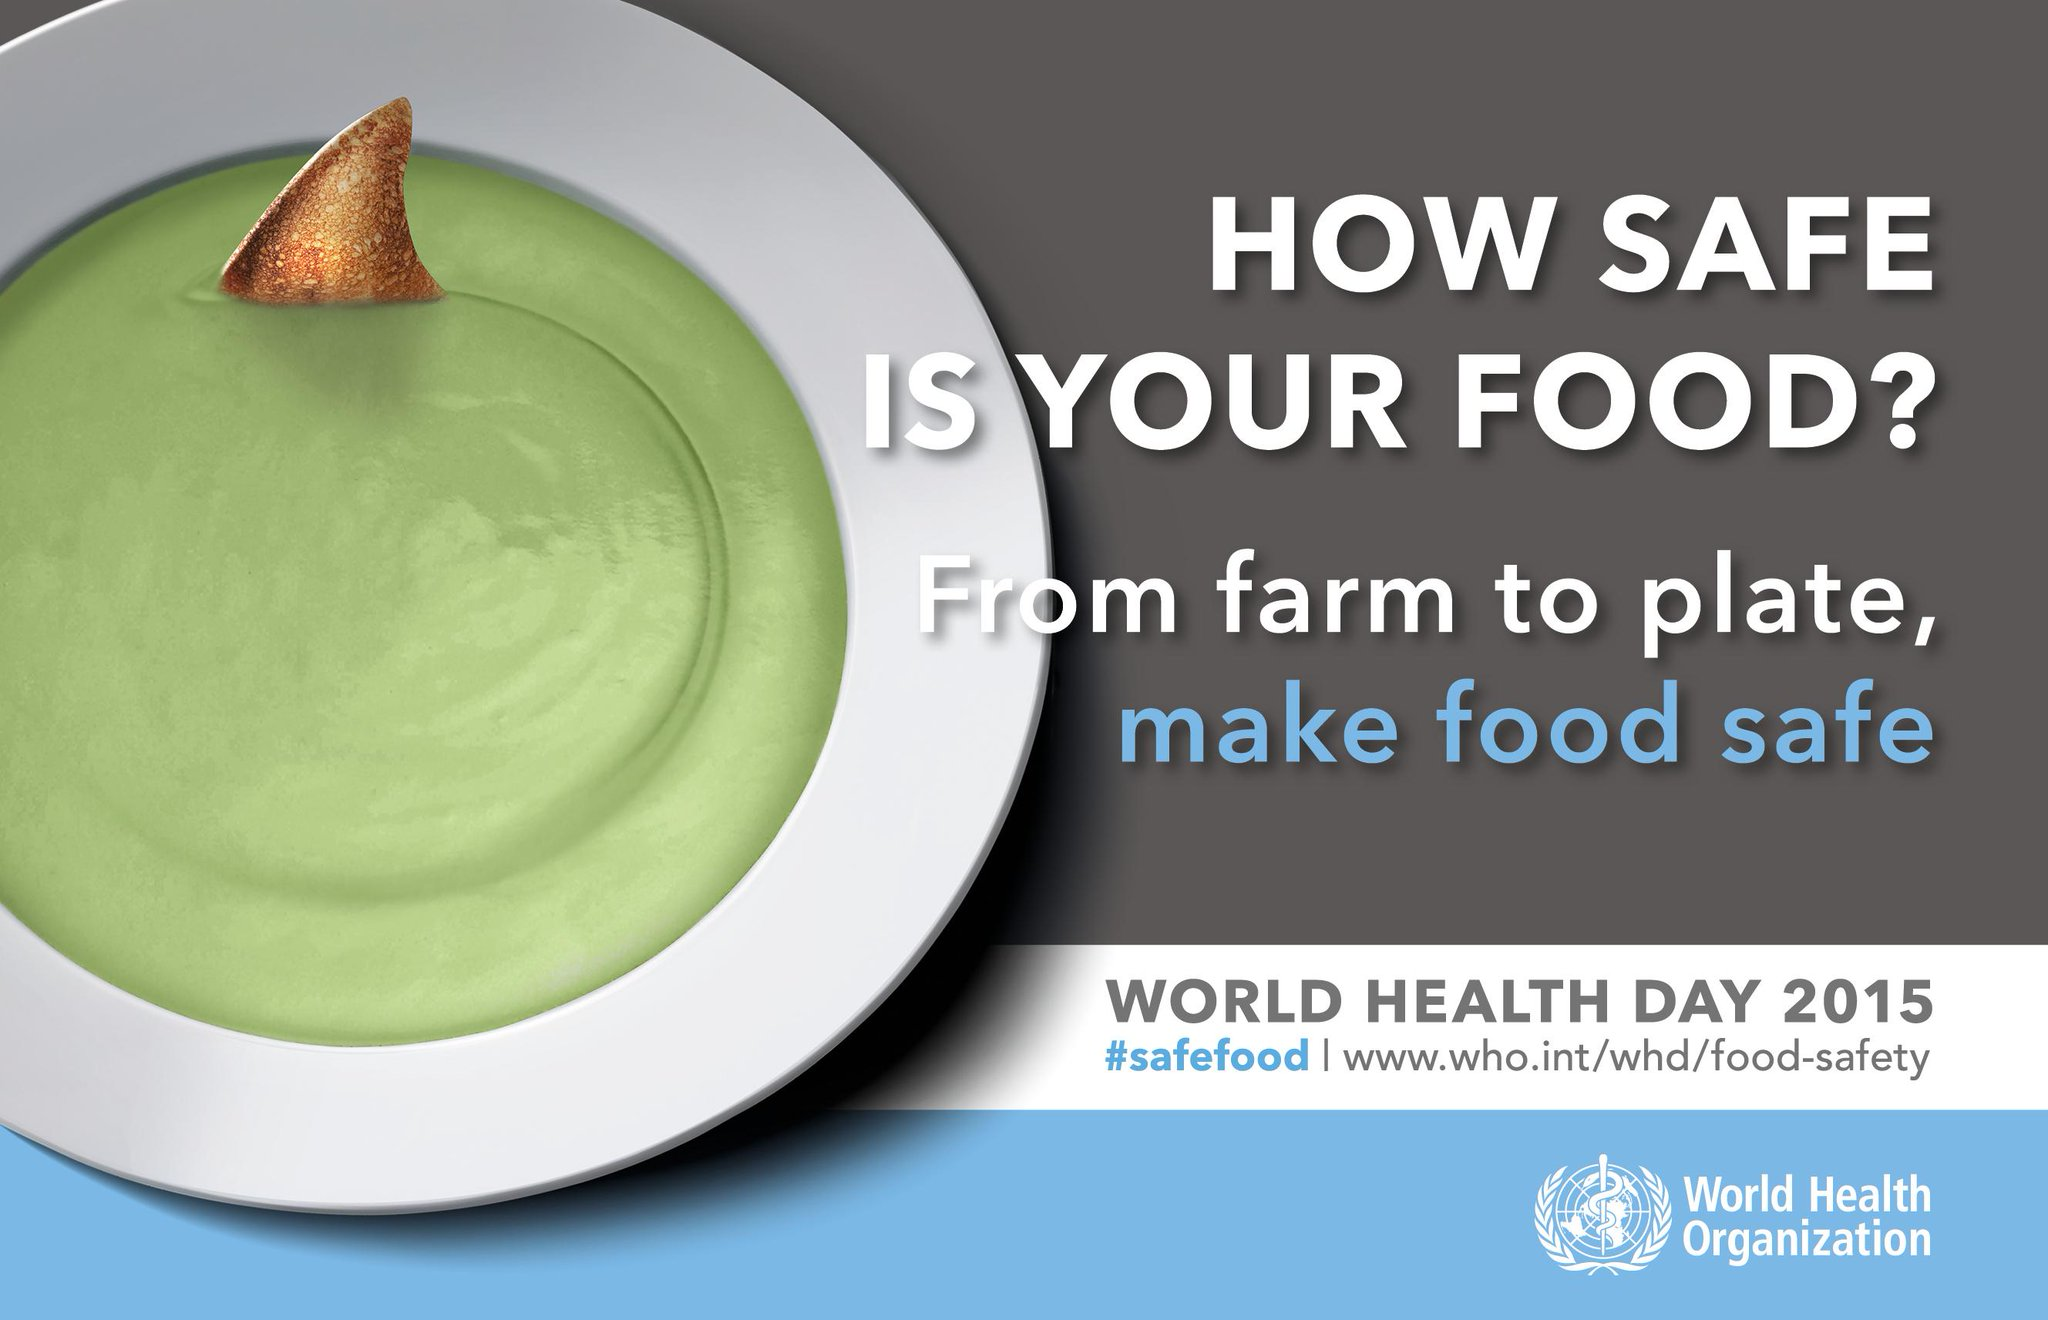 RT @WHO: 7 April 2015 is World Health Day! We'll be highlighting Food Safety. Do you know if your food is safe? #SafeFood http://t.co/bxVvo…